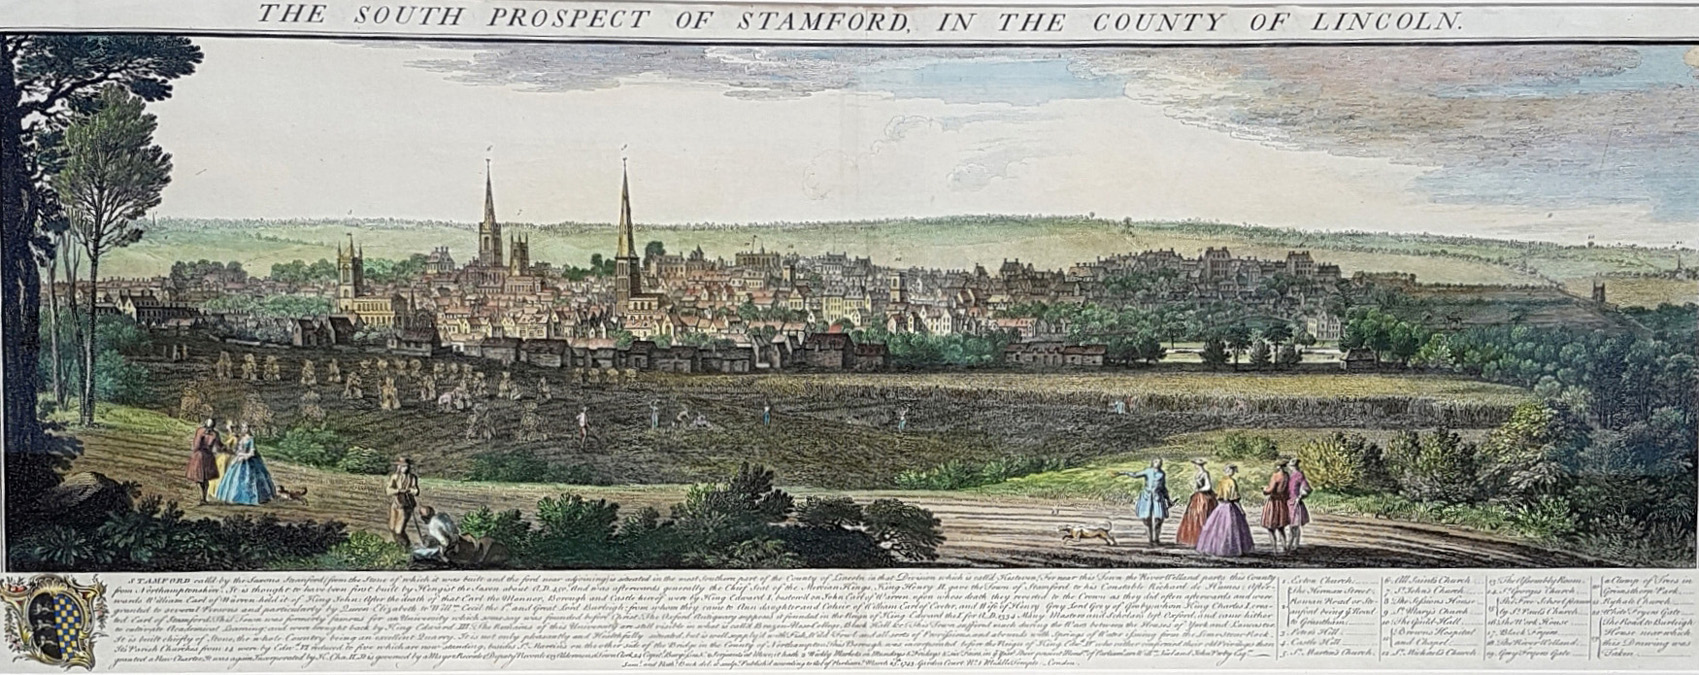 South Prospect of Stamford in Lincoln County. Buck c1743.